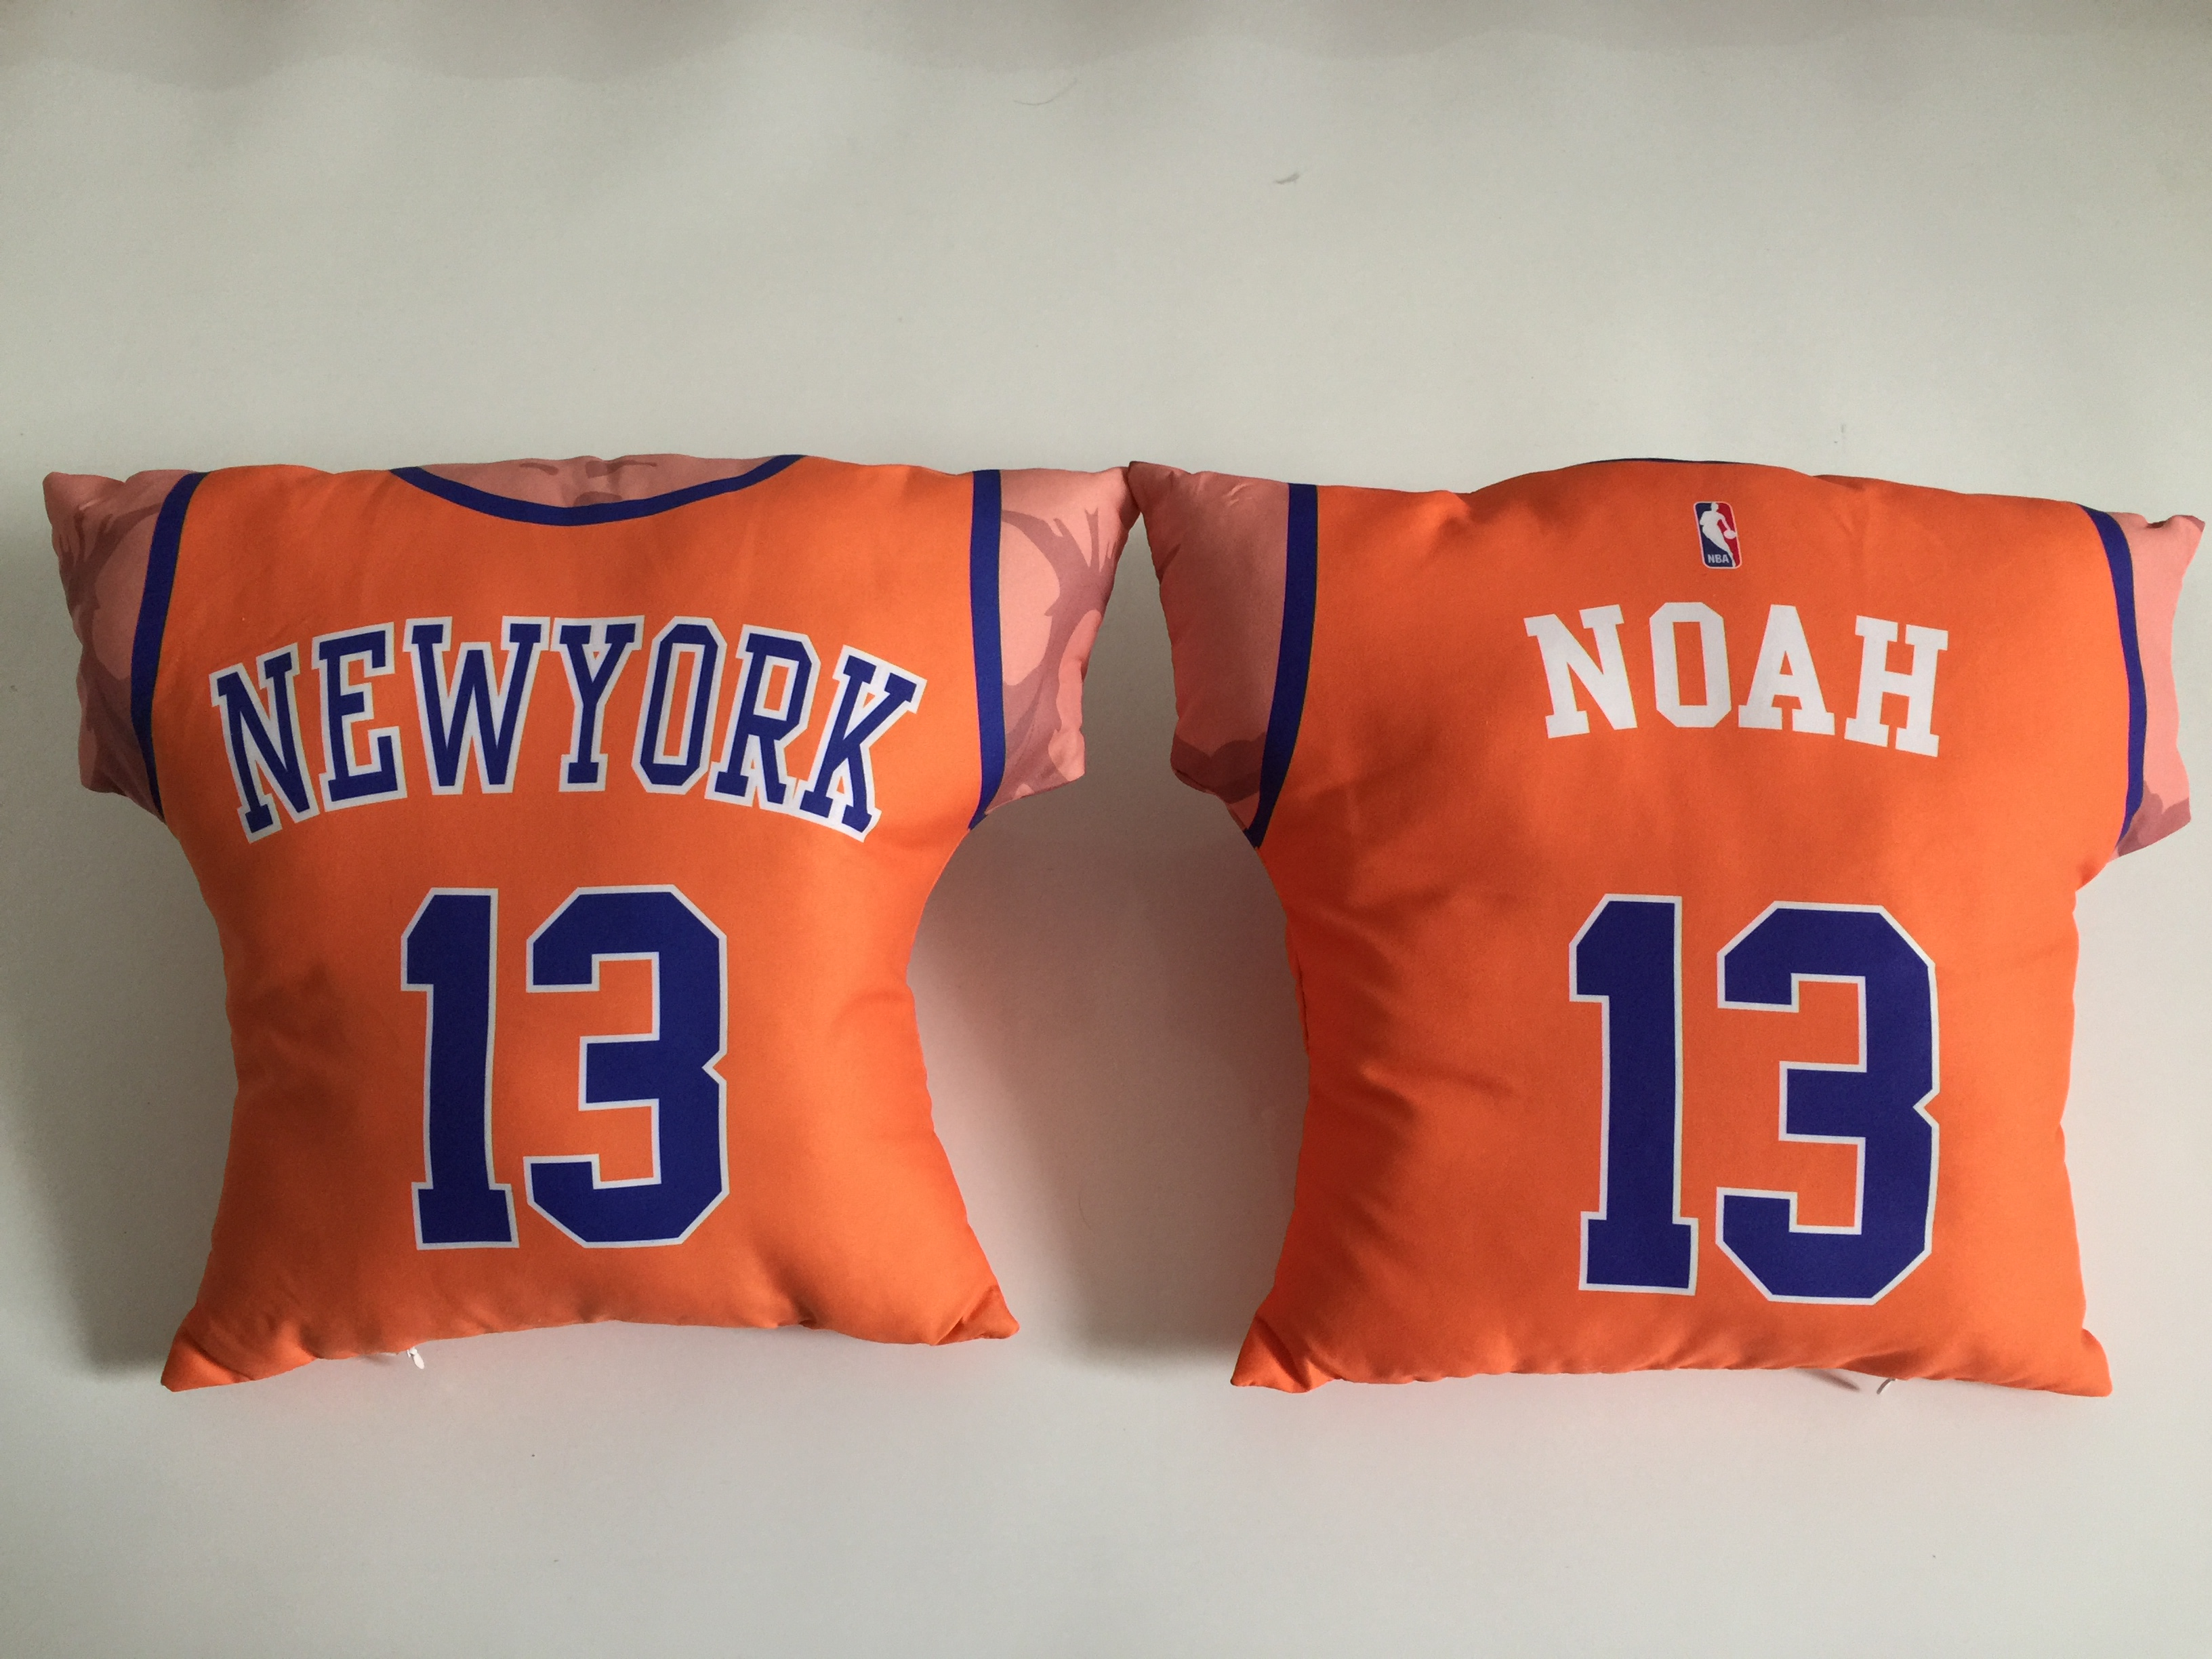 New York Knicks 13 Joakim Noah Orange NBA Pillow